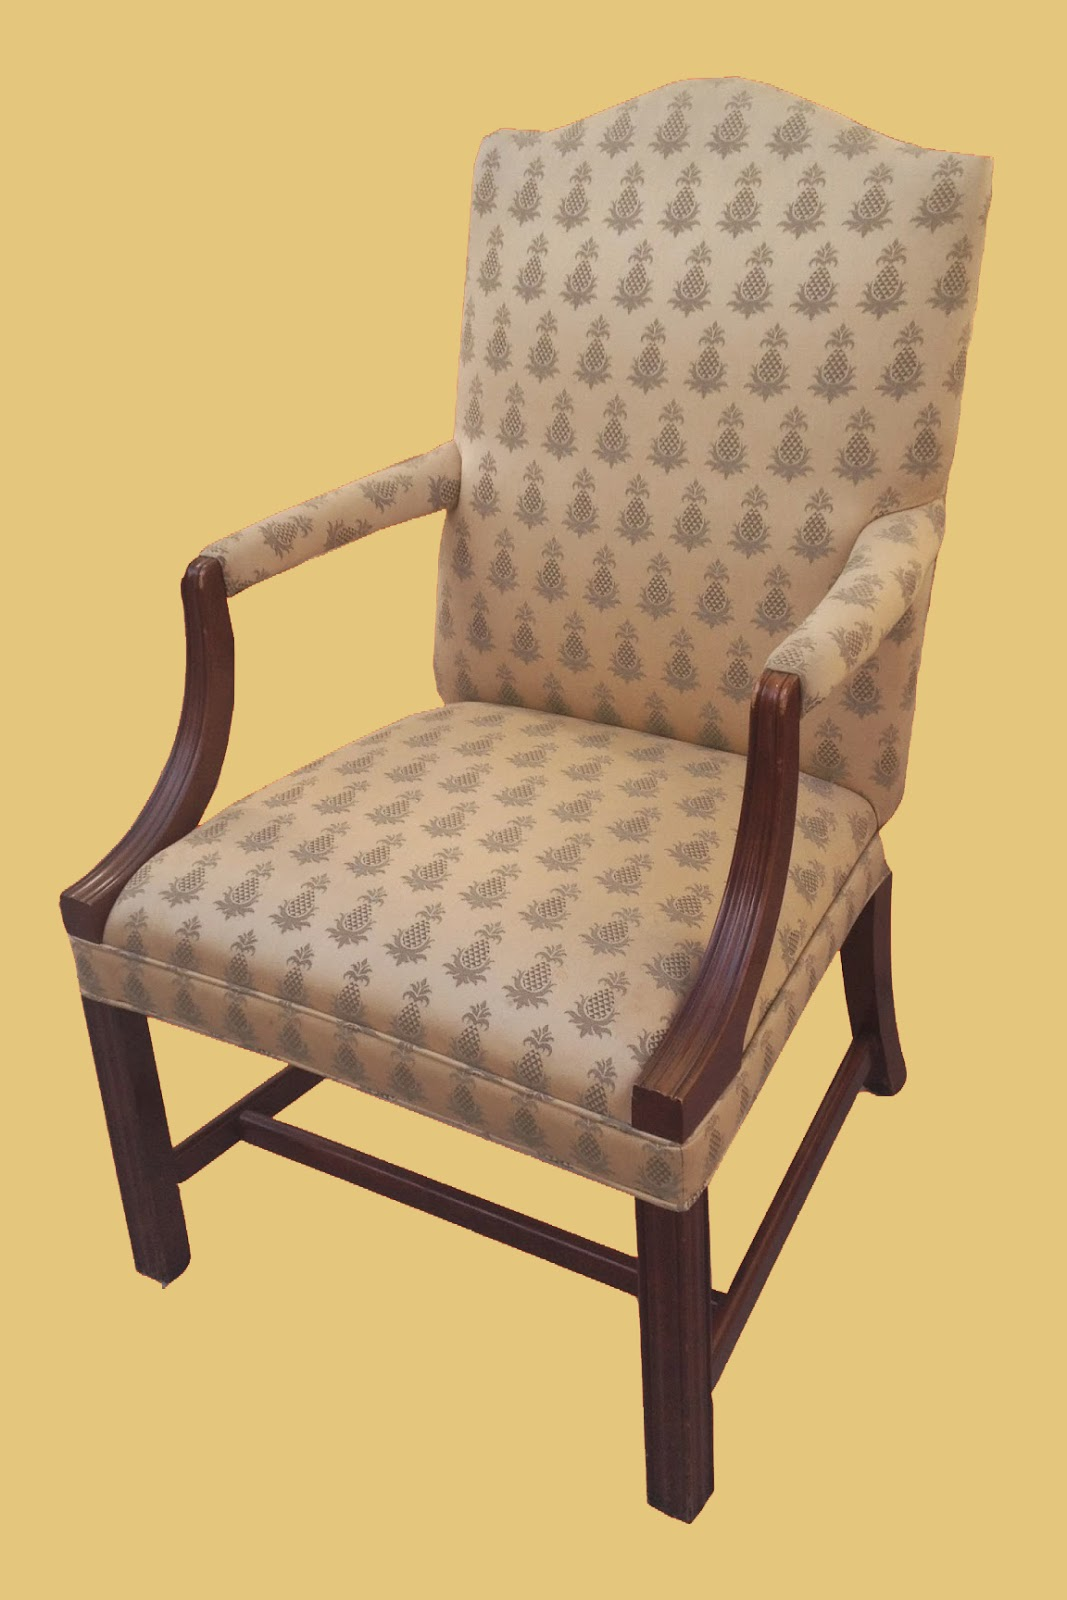 Chairs Are Available Separately For 95 Each